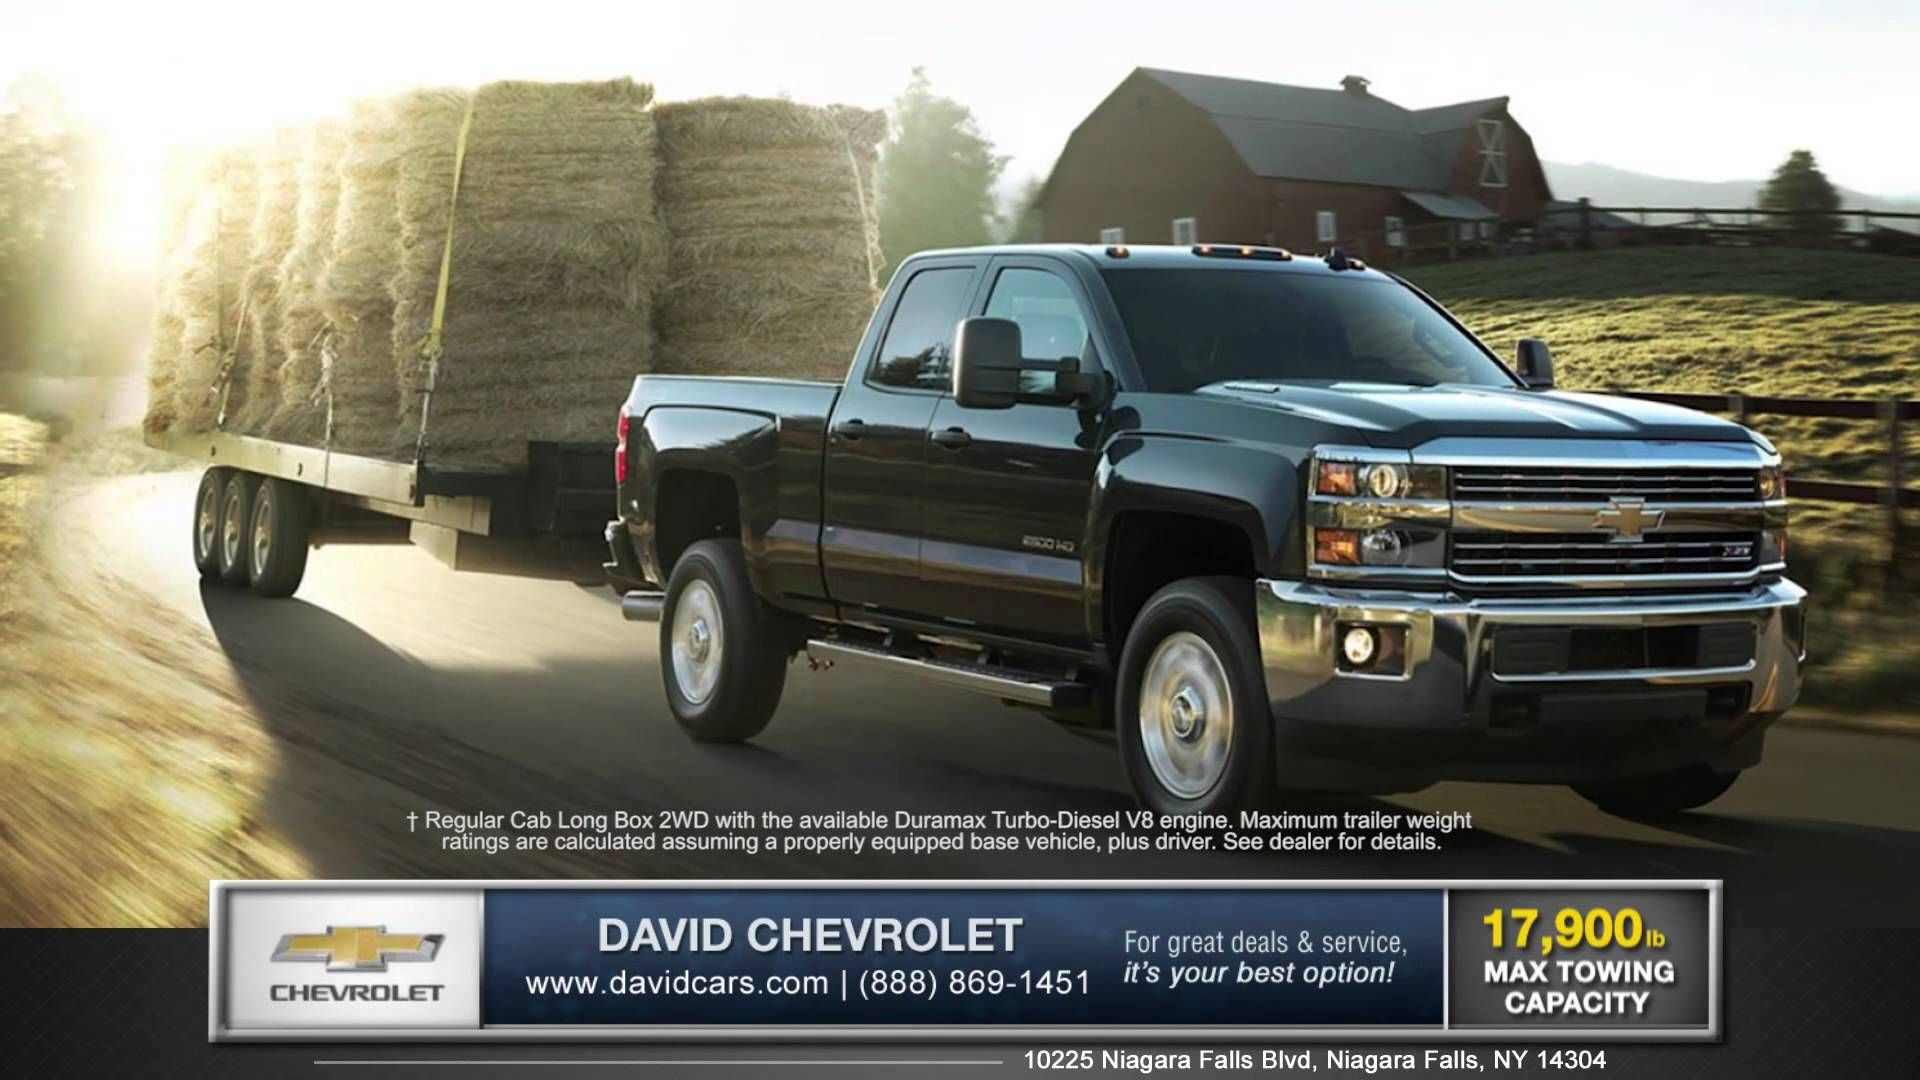 We hate to use the phrase now is the time to buy but at this kind of savings it is the time to buy this 2014 chevy duramax